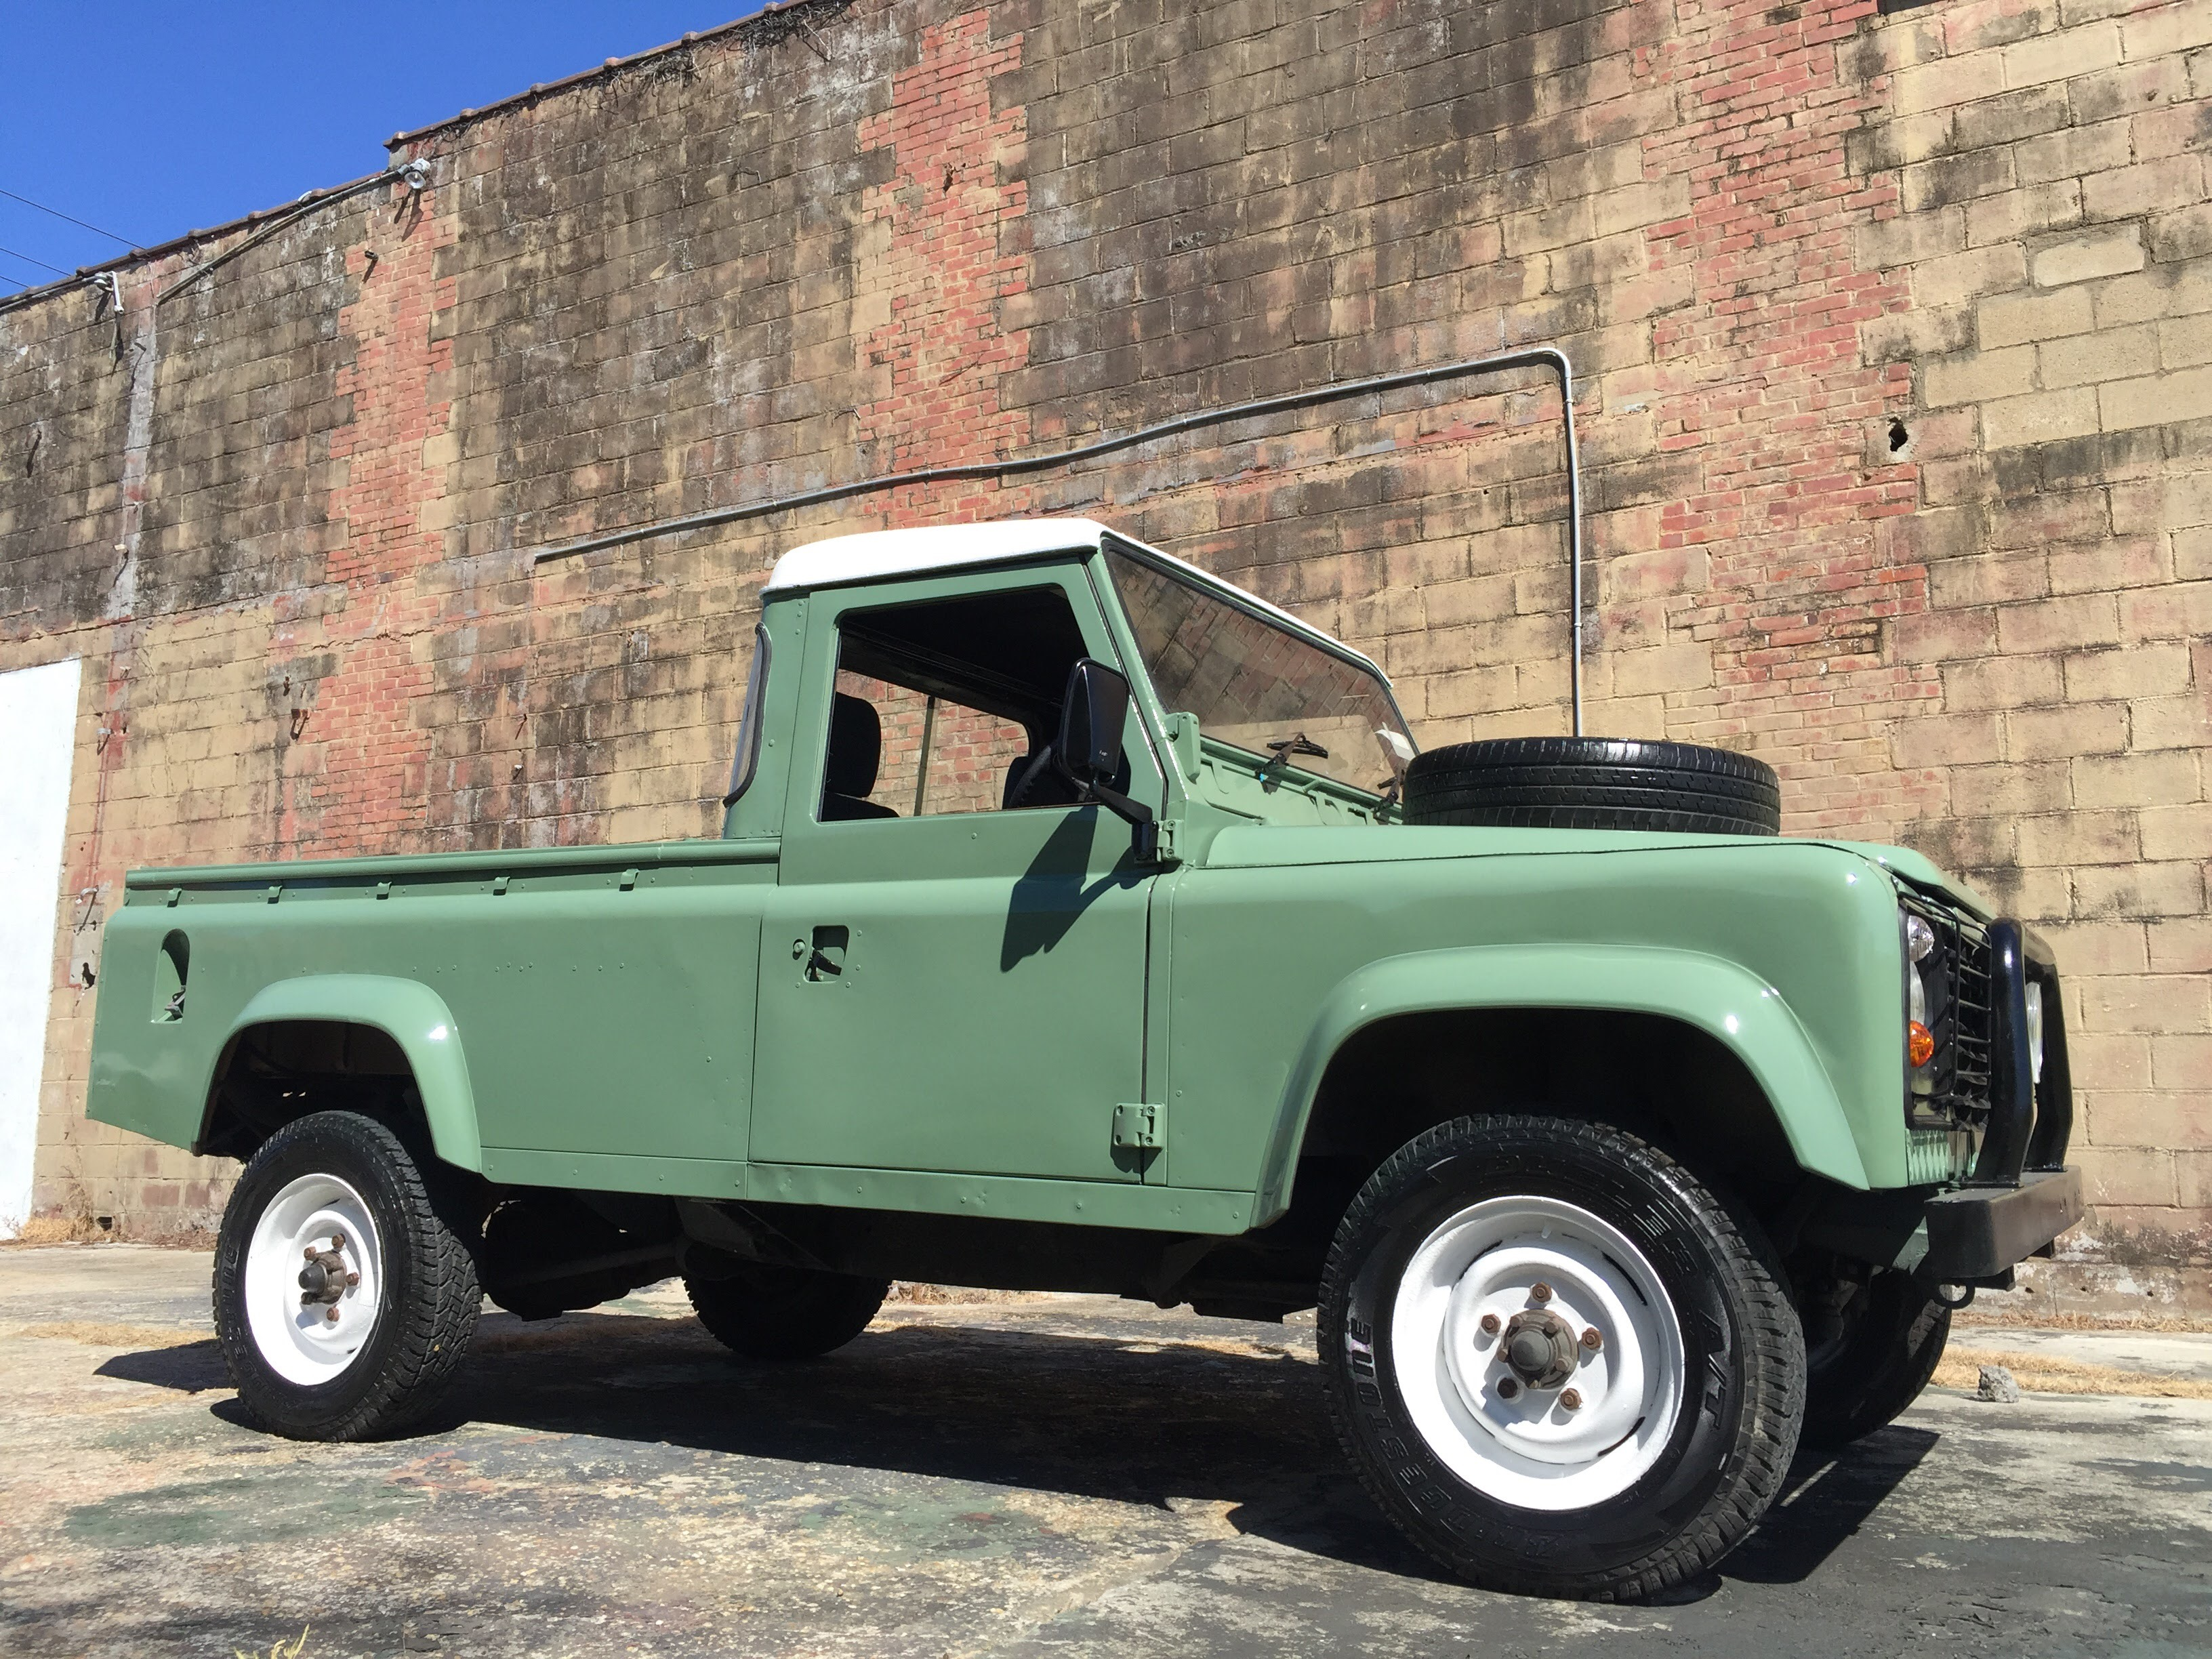 Vintage Land Rover 110 Relic Imports Land Rover